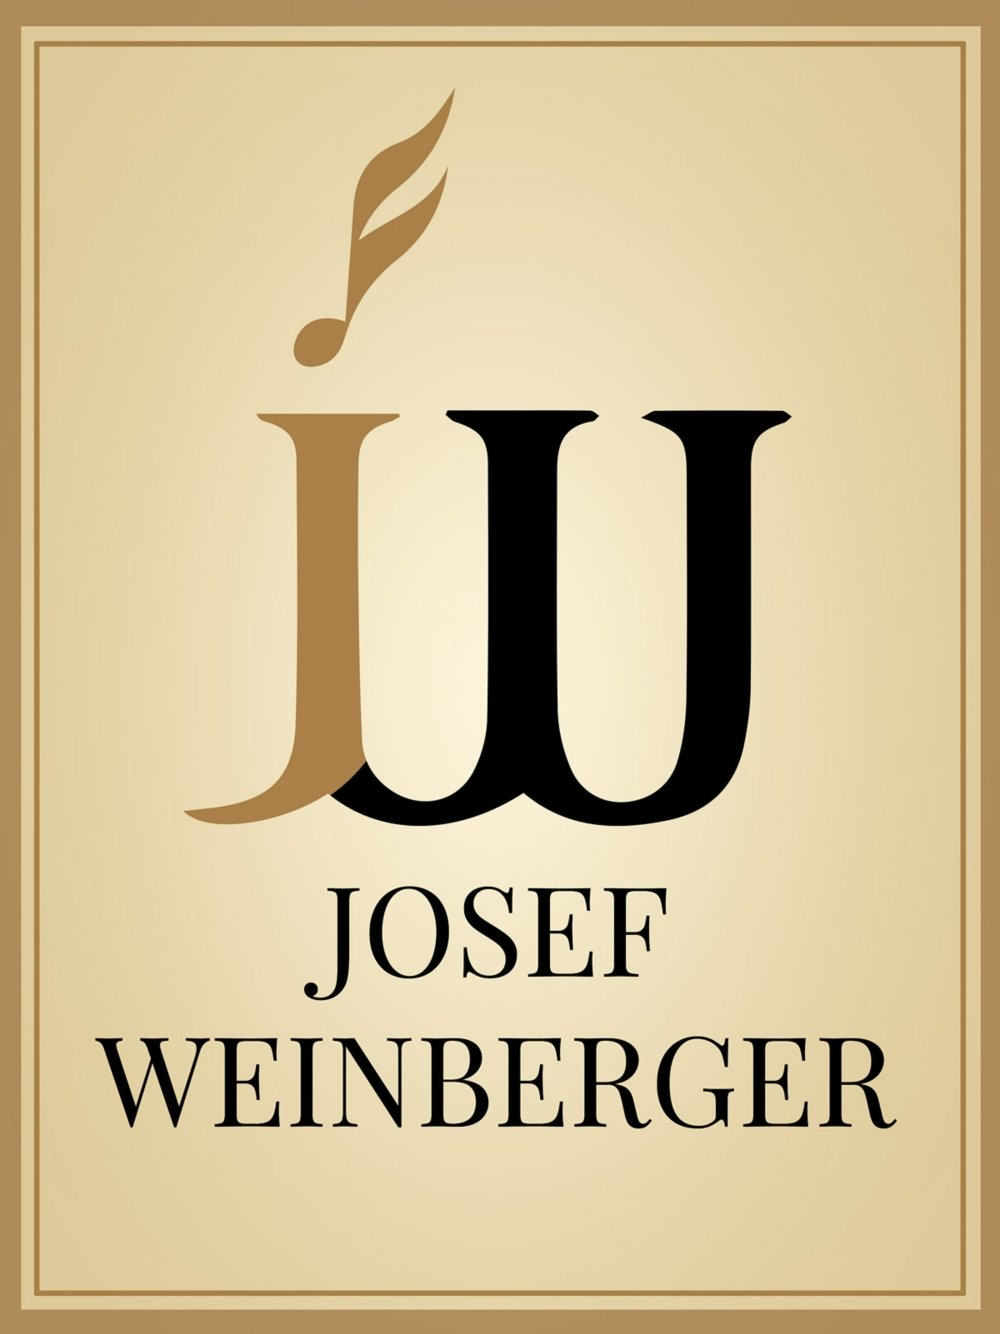 Joseph Weinberger Trio for Flute, Oboe and Piano (Set of Parts) Boosey & Hawkes Chamber Music Series by Madeleine Dring pdf